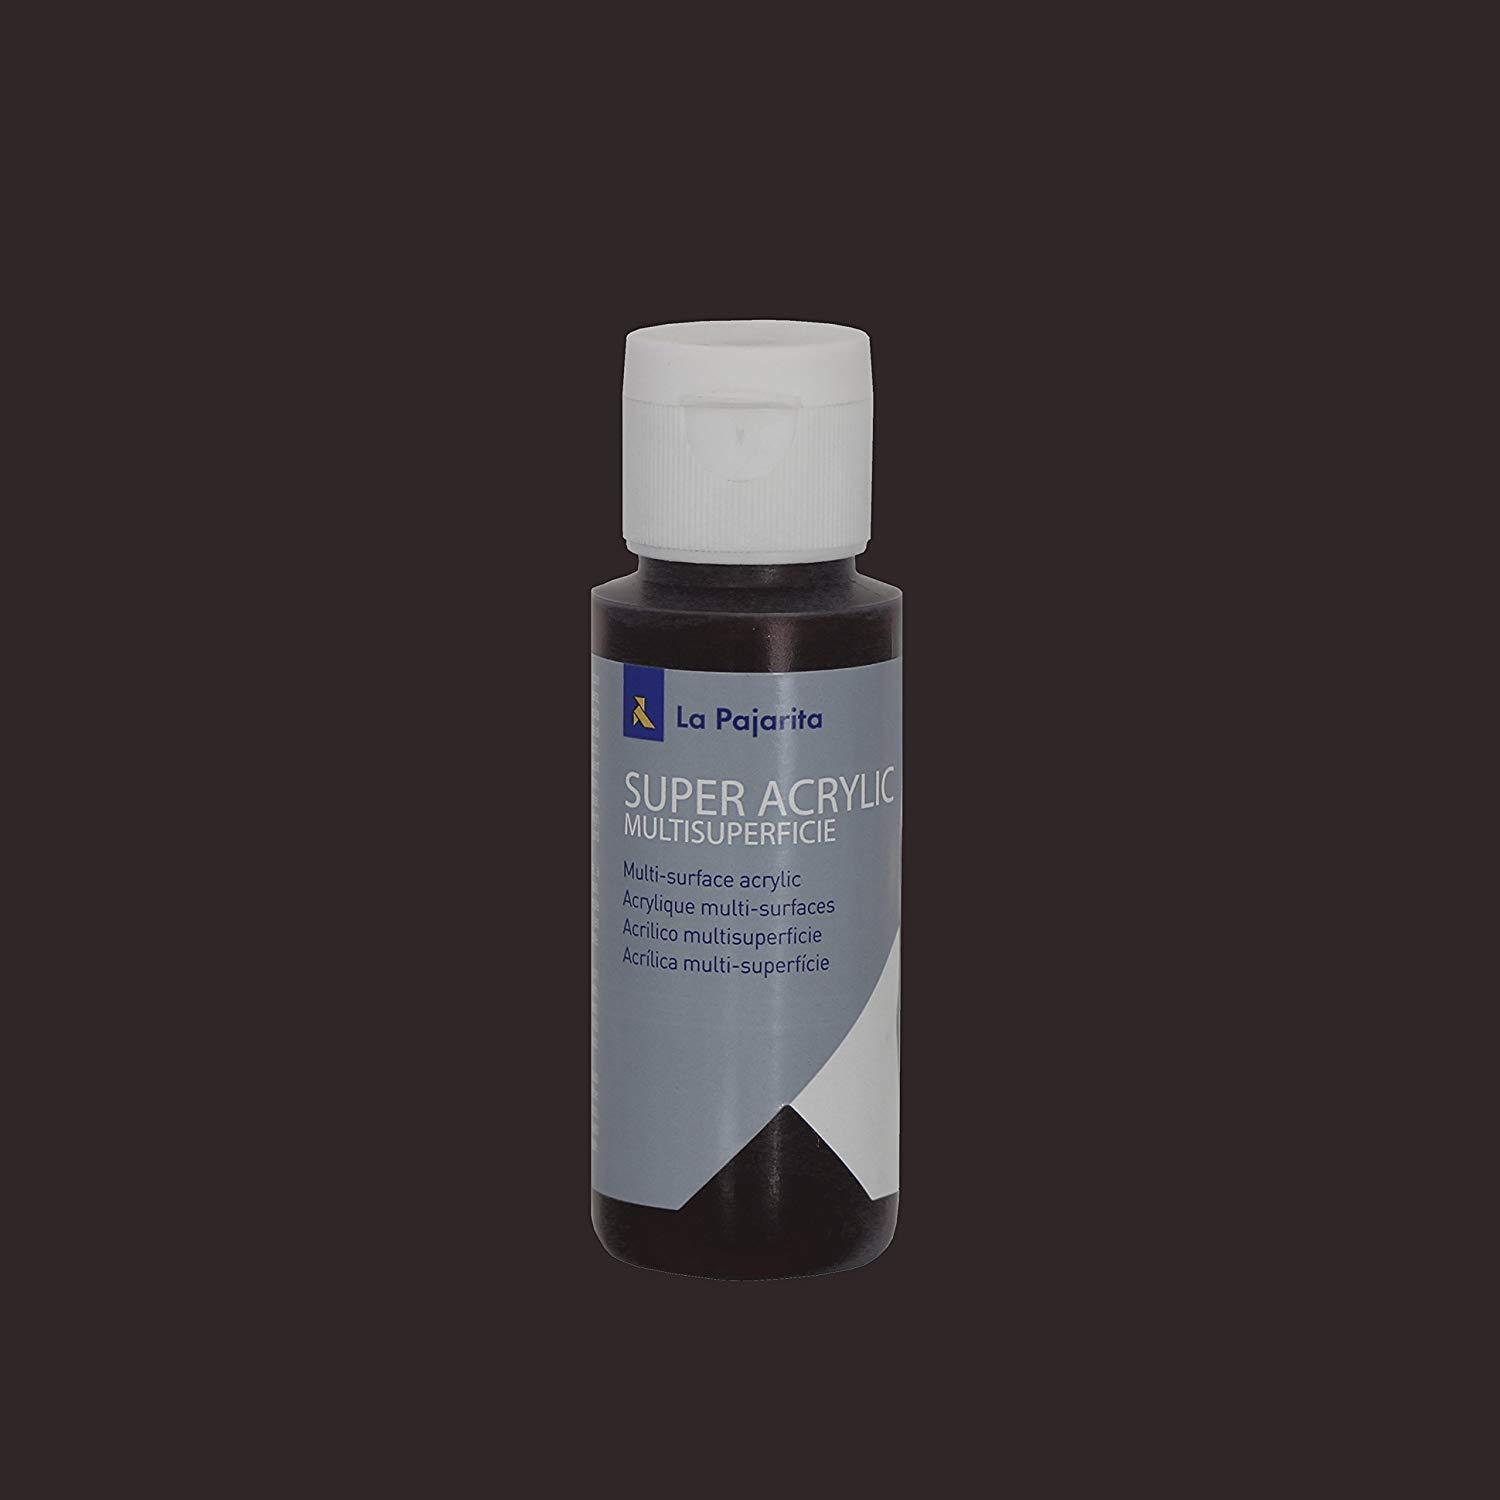 PINTURA LA PAJARITA SUPER ACRYLIC COLOR CHOCOLATE OSCURO 60ML